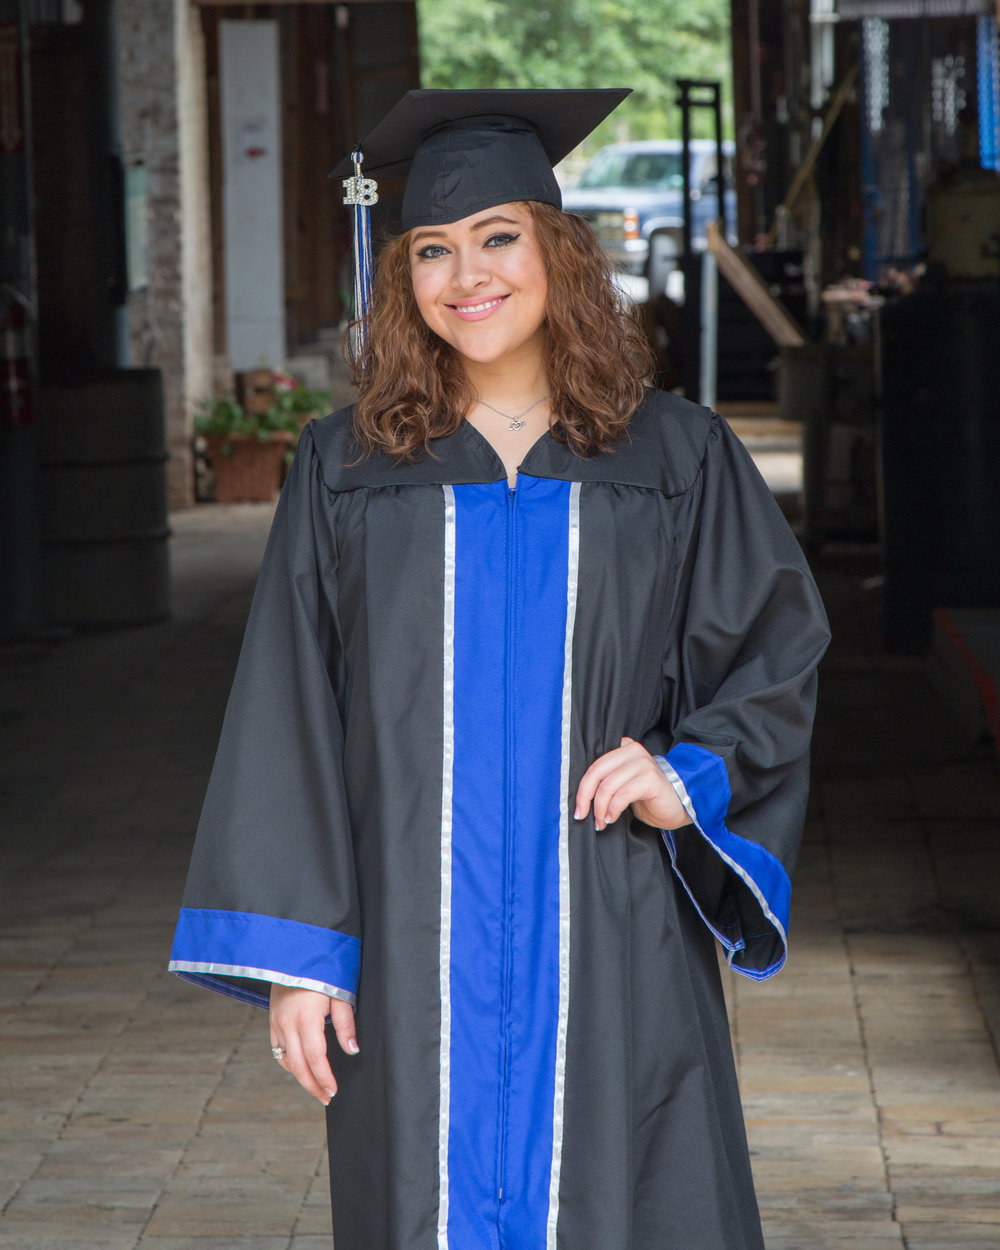 Graduation Photoshoot Cap and Gown